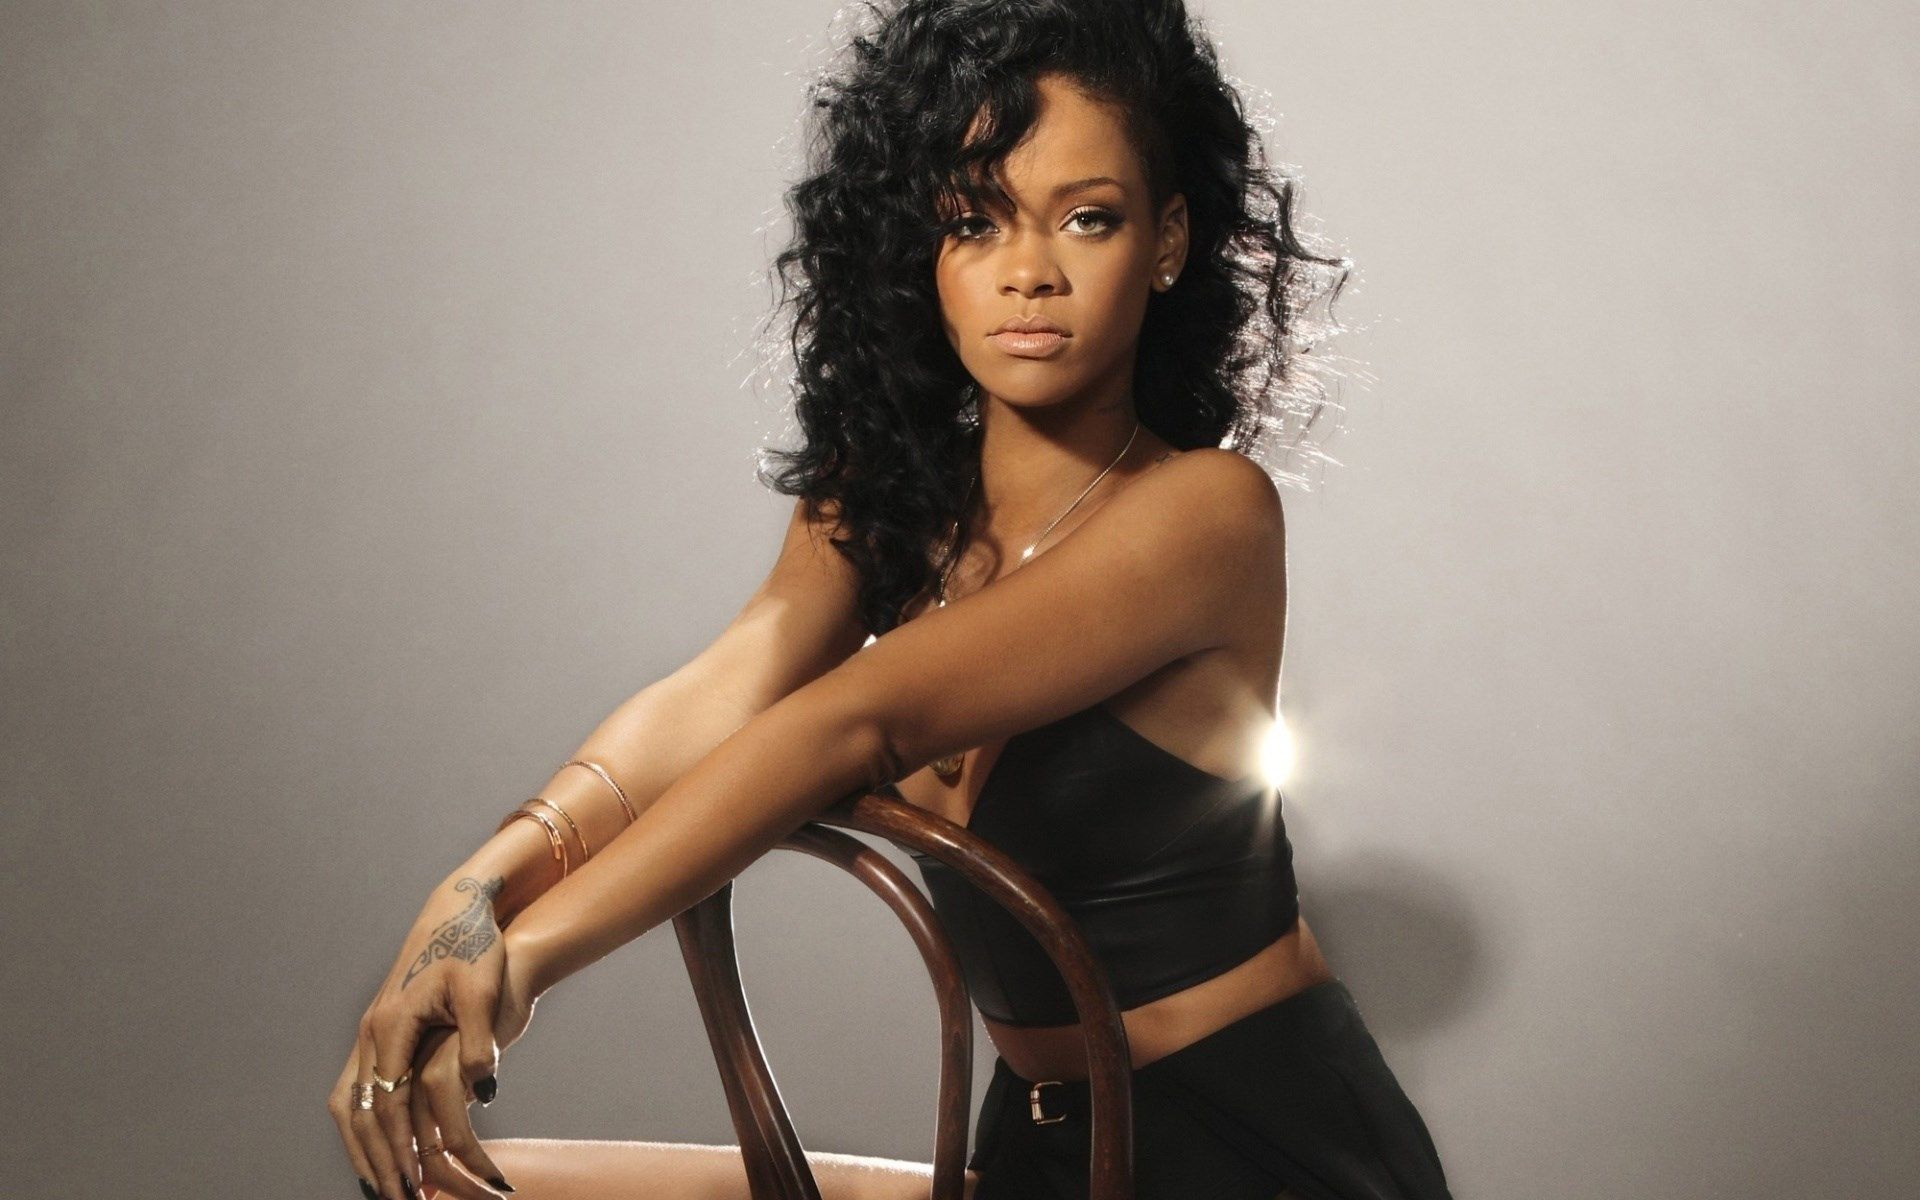 rihanna wallpapers for mac desktop - rihanna category